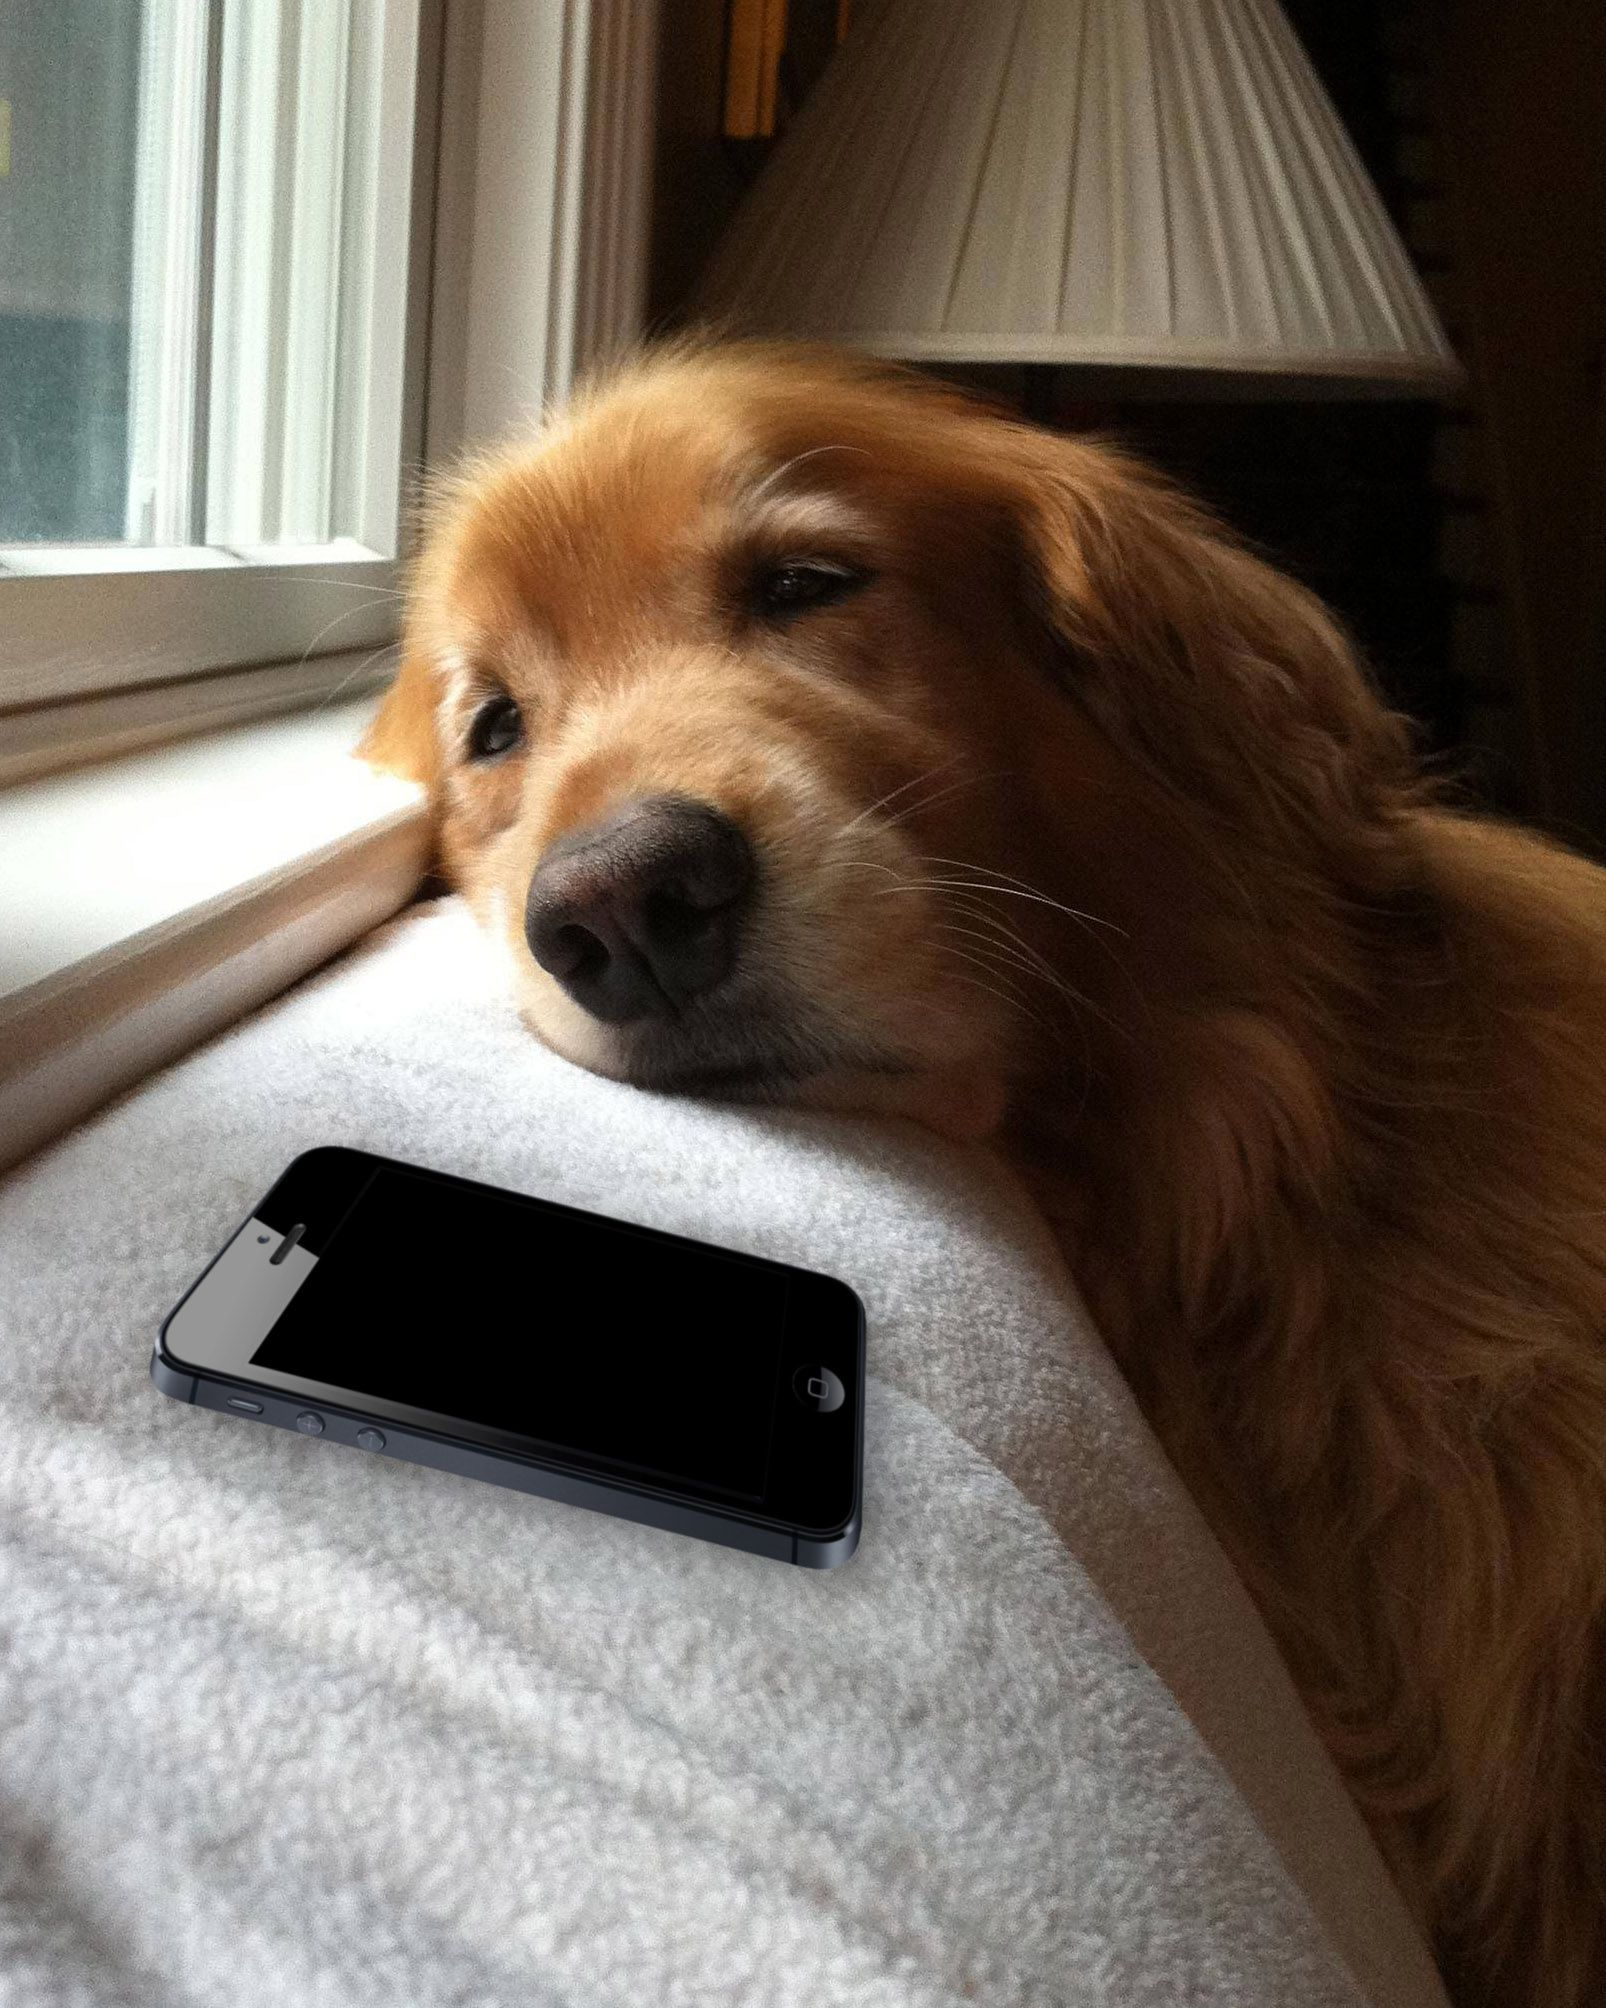 Me when waiting for a reply from my crush | Dogs, Baby dogs, Funny ...